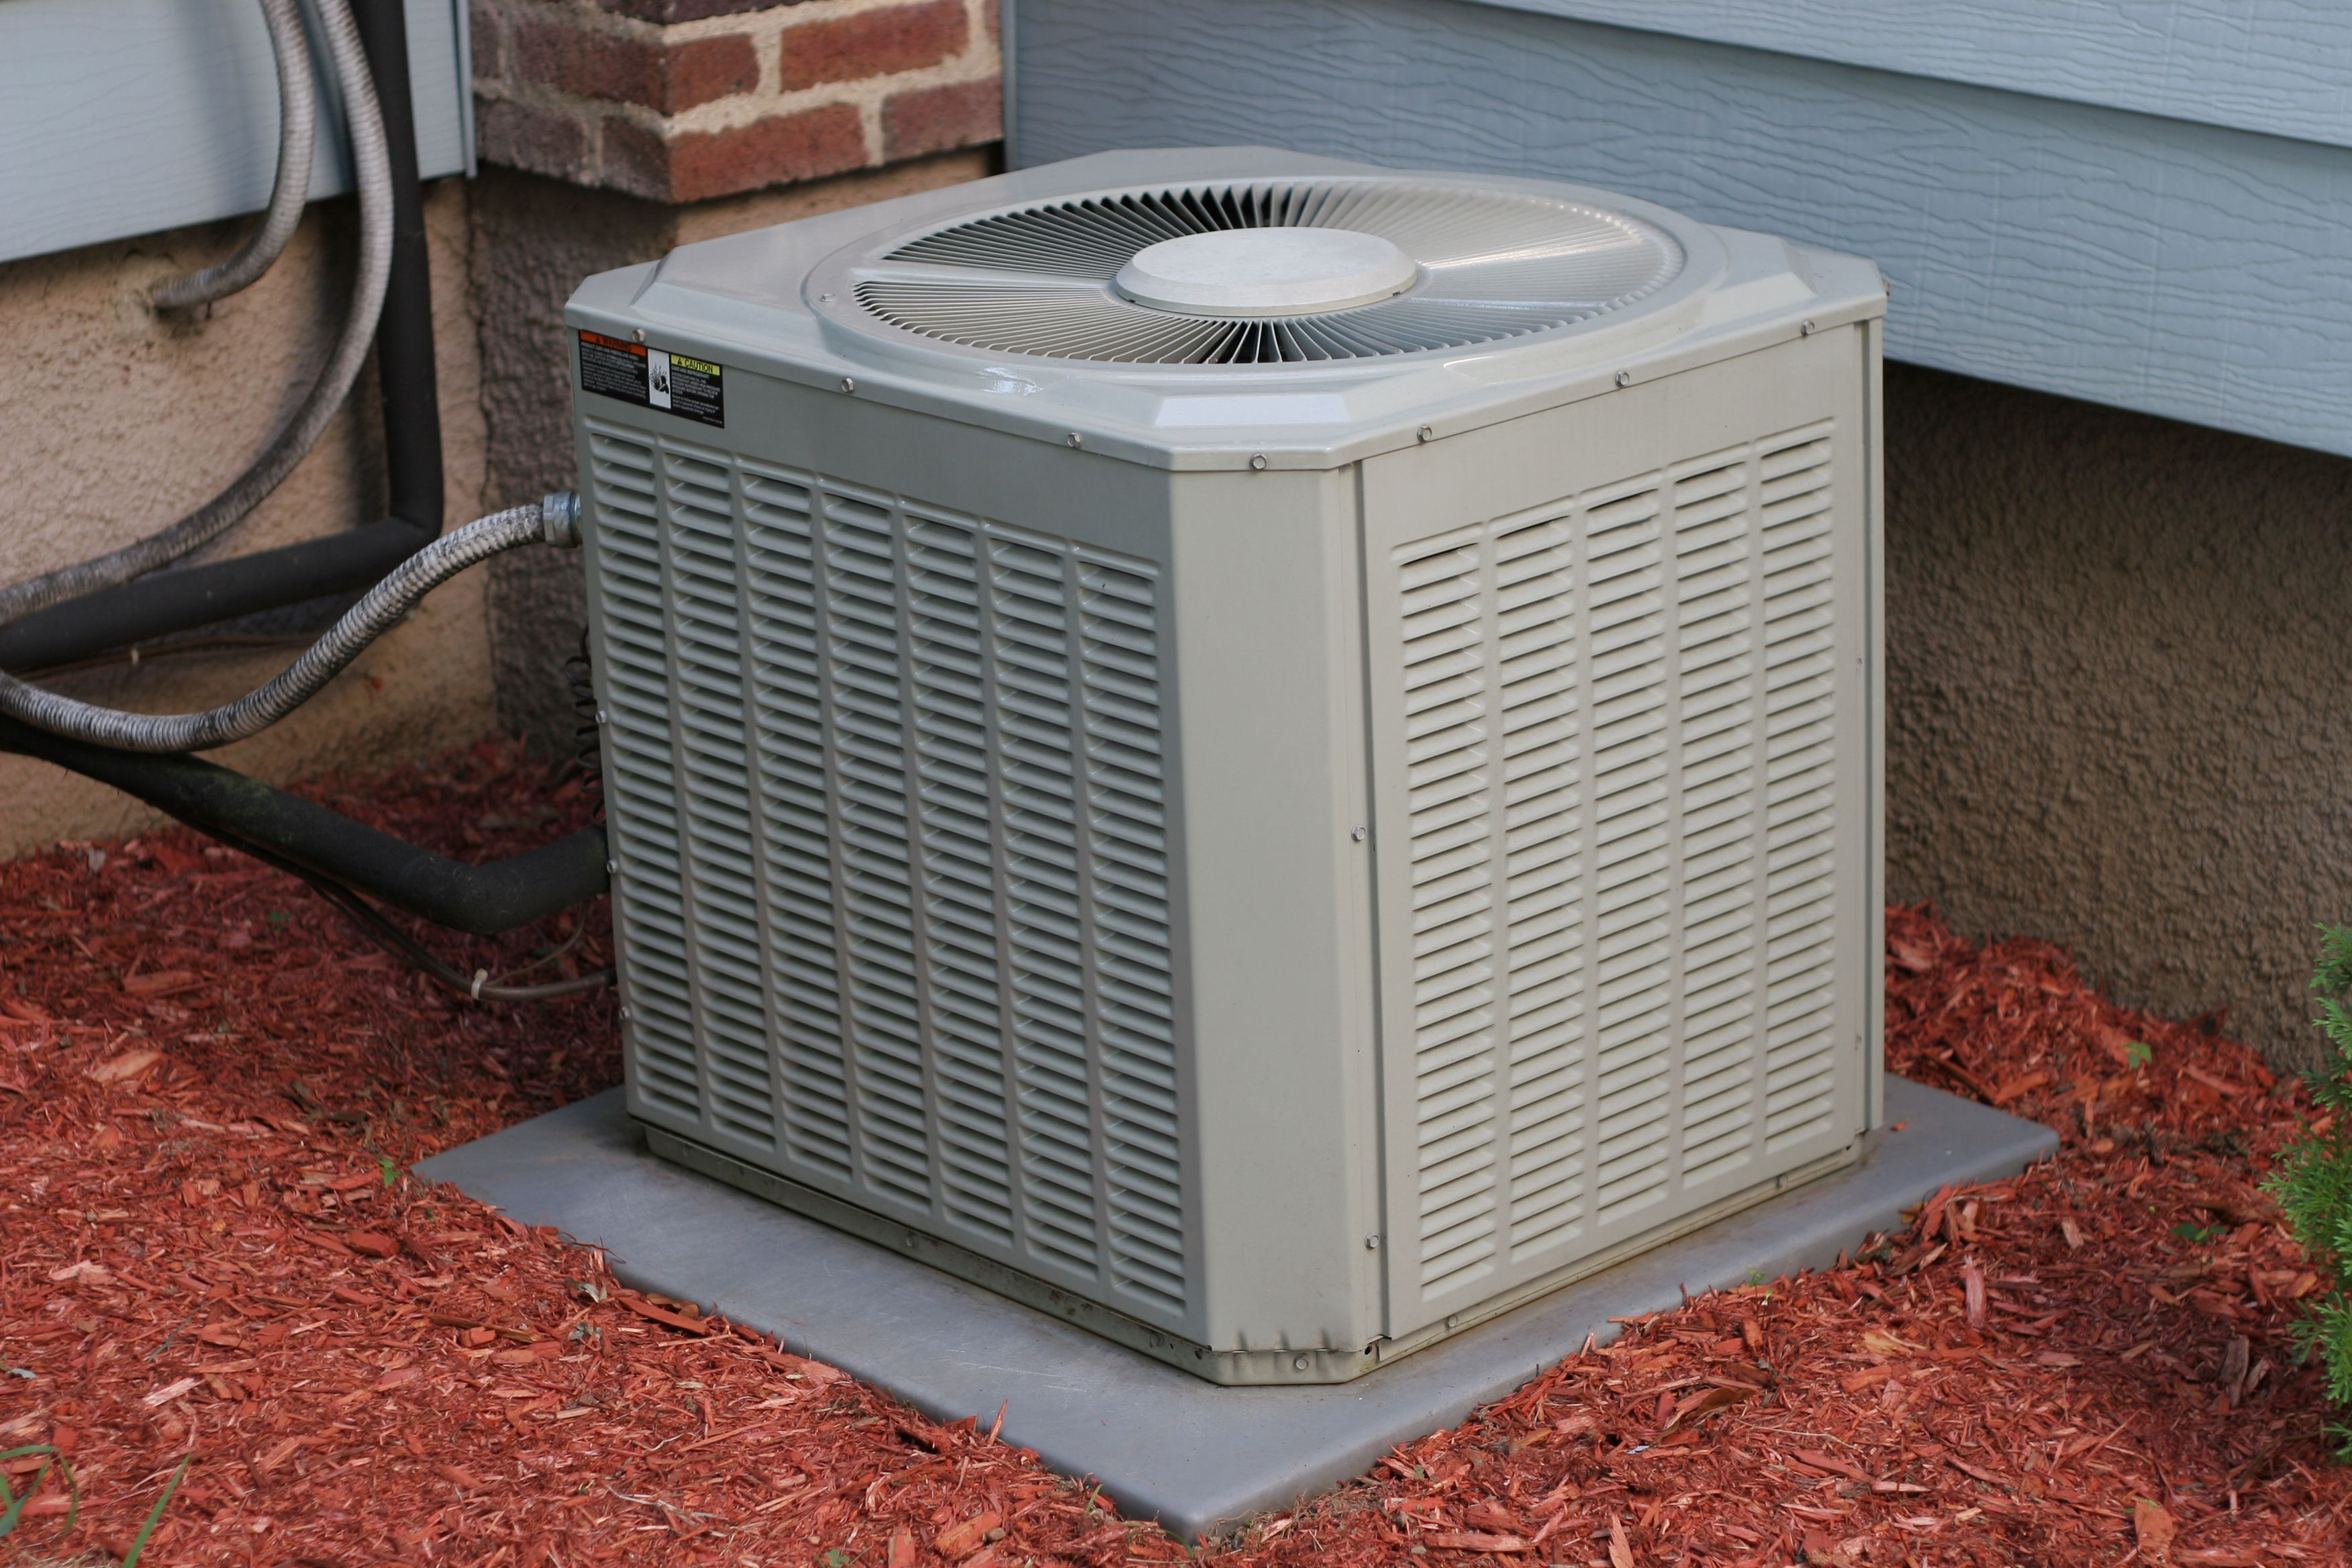 13 Genius Ways To Hide An Ugly Ac Unit How To Hide An Ugly Ac Unit